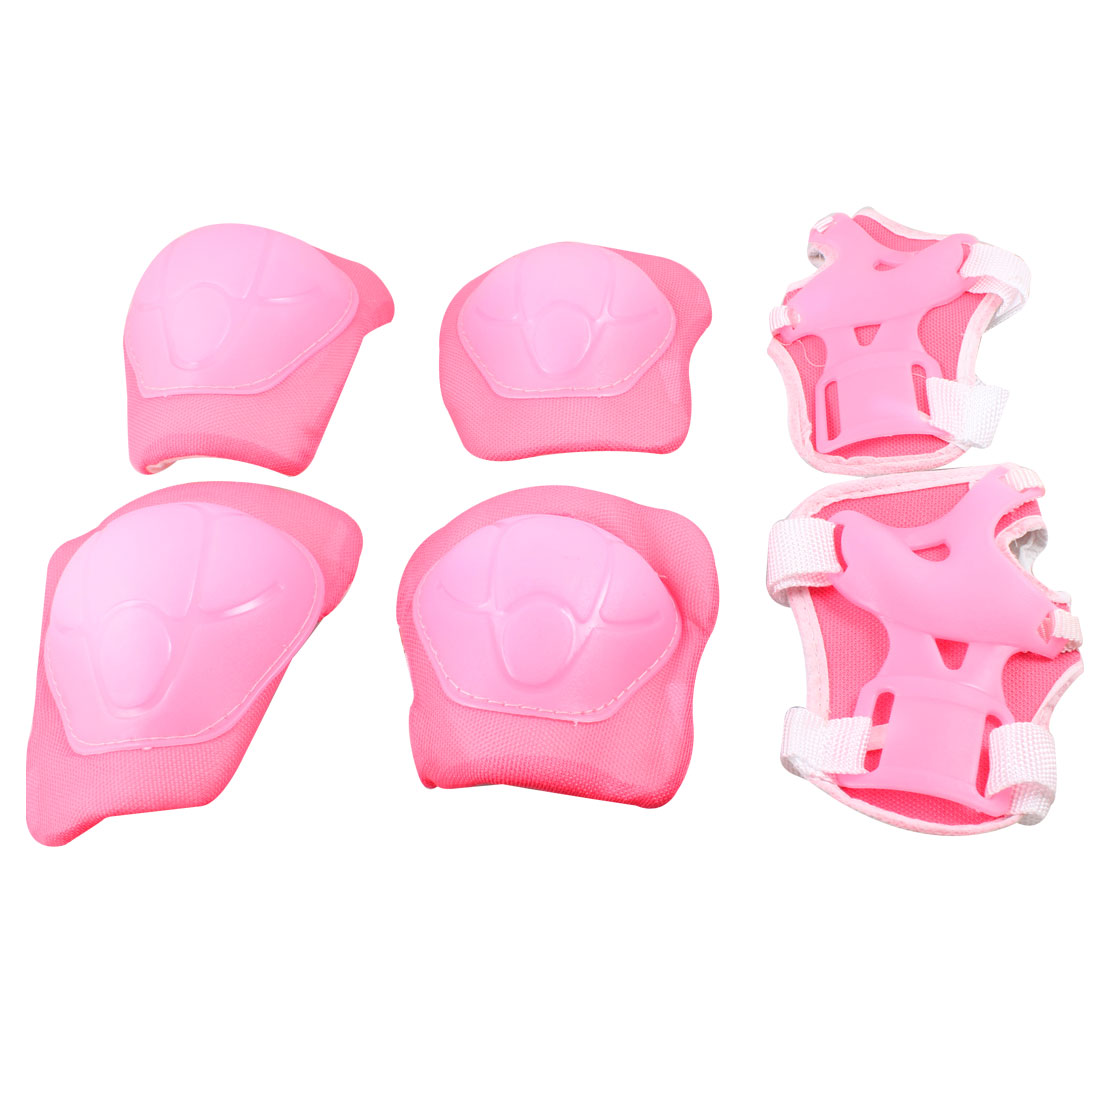 Kids Bike Skateboard Hoop Loop Fastener Pink White Knee Elbow Wrist Pads Protectors 3 Pairs